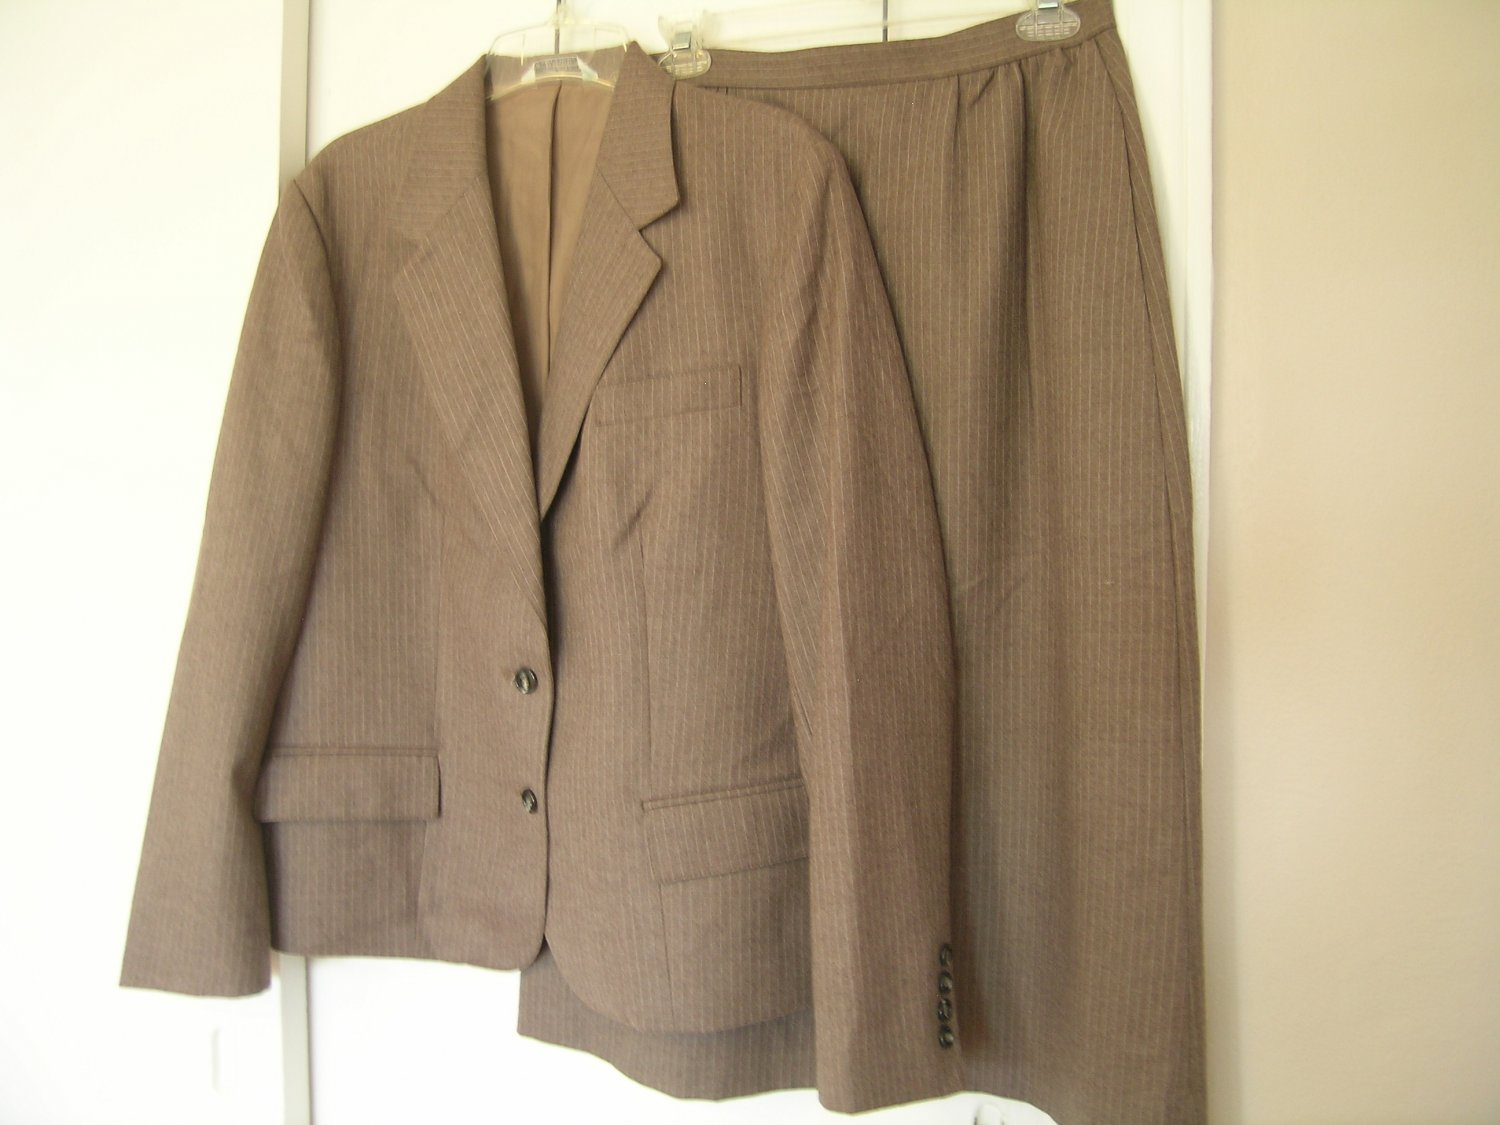 ICI By Bonders Ladies Skirt Suit Size 10 ???